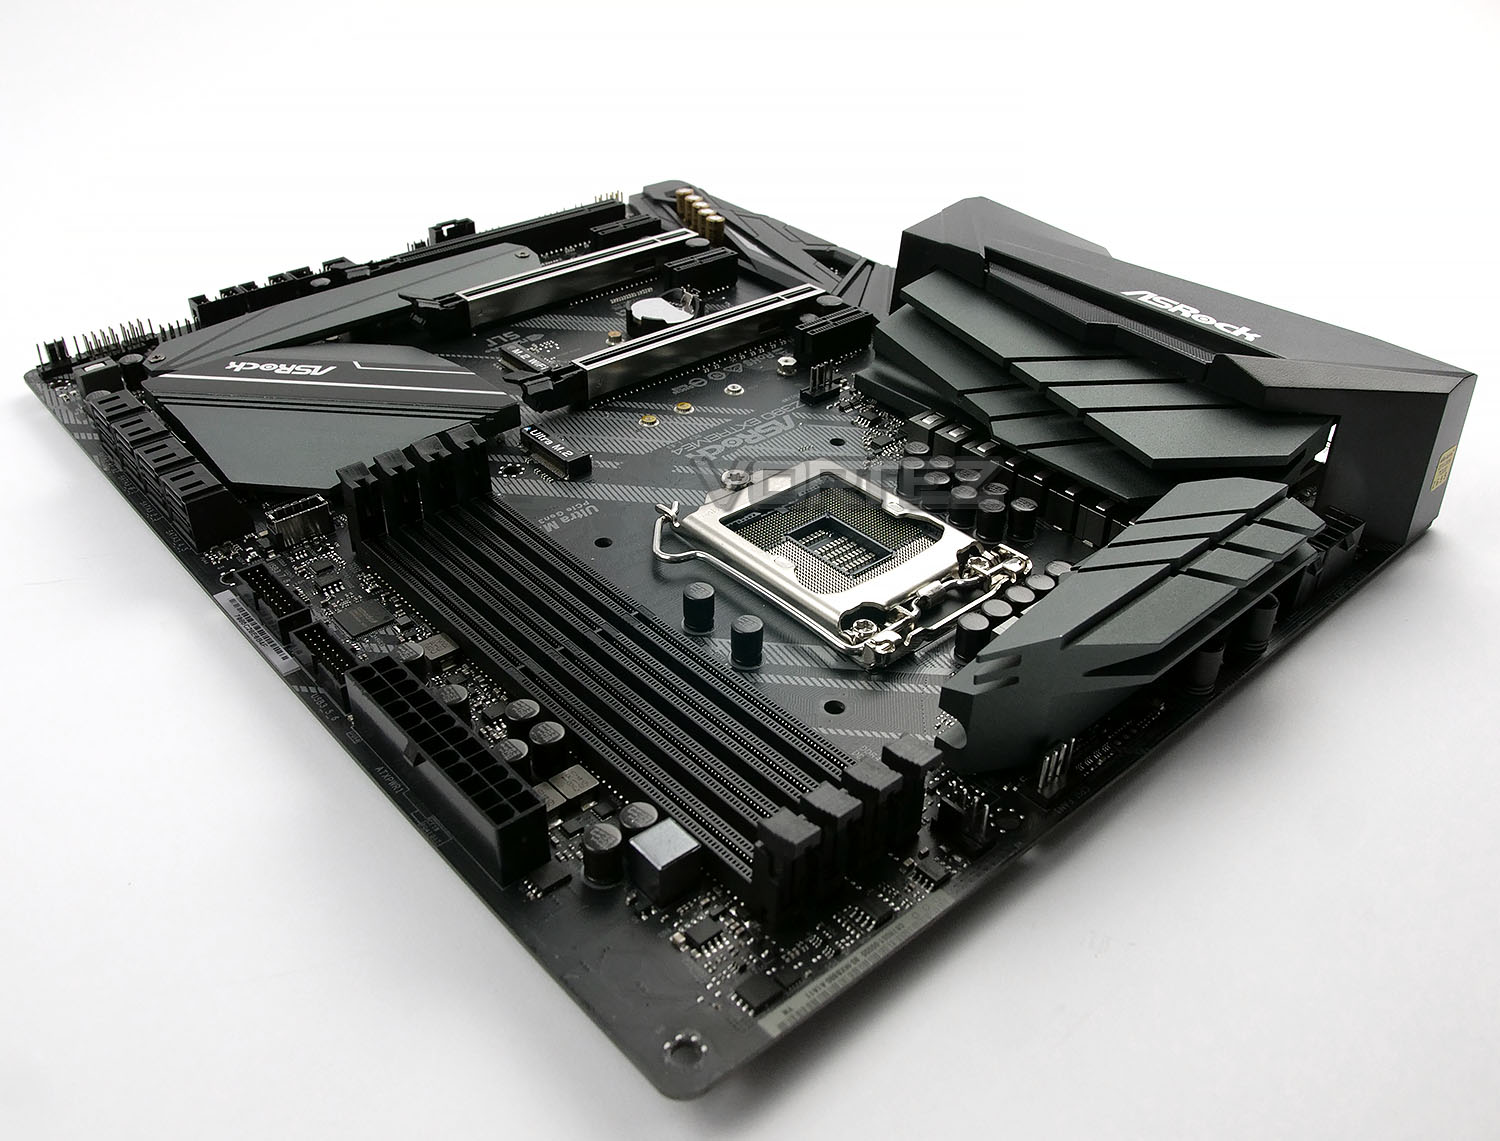 ASRock Z390 Extreme4 Review - Introduction